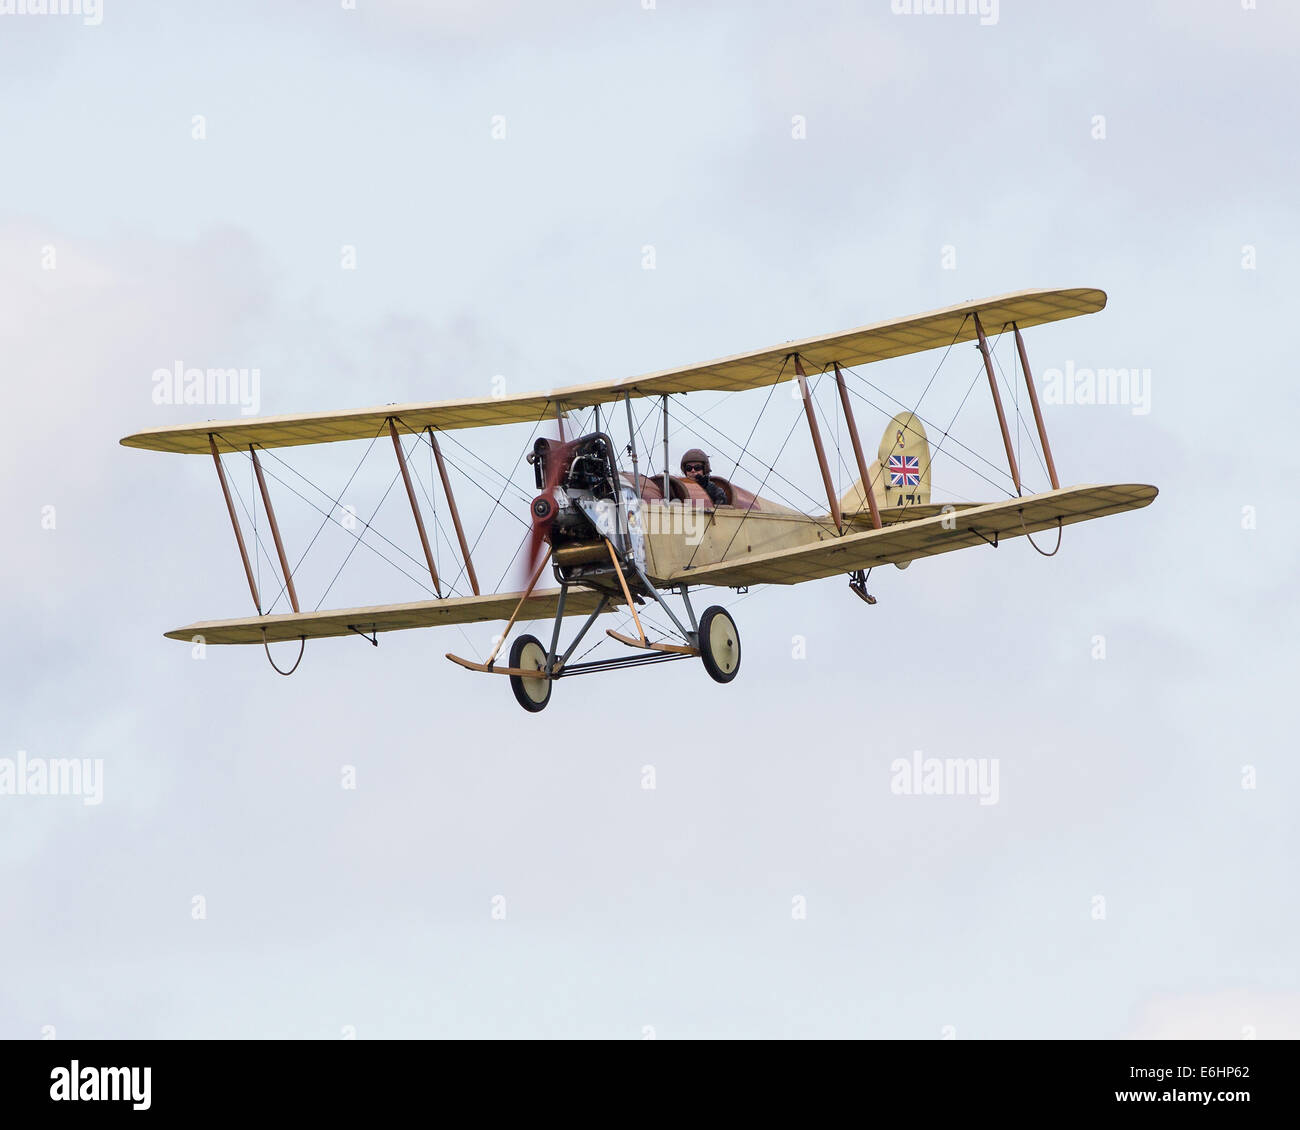 Dunsfold, UK. 23rd Aug, 2014. Dunsfold aerodrome in Surrey holds an annual motor and airshow over the August Bank - Stock Image